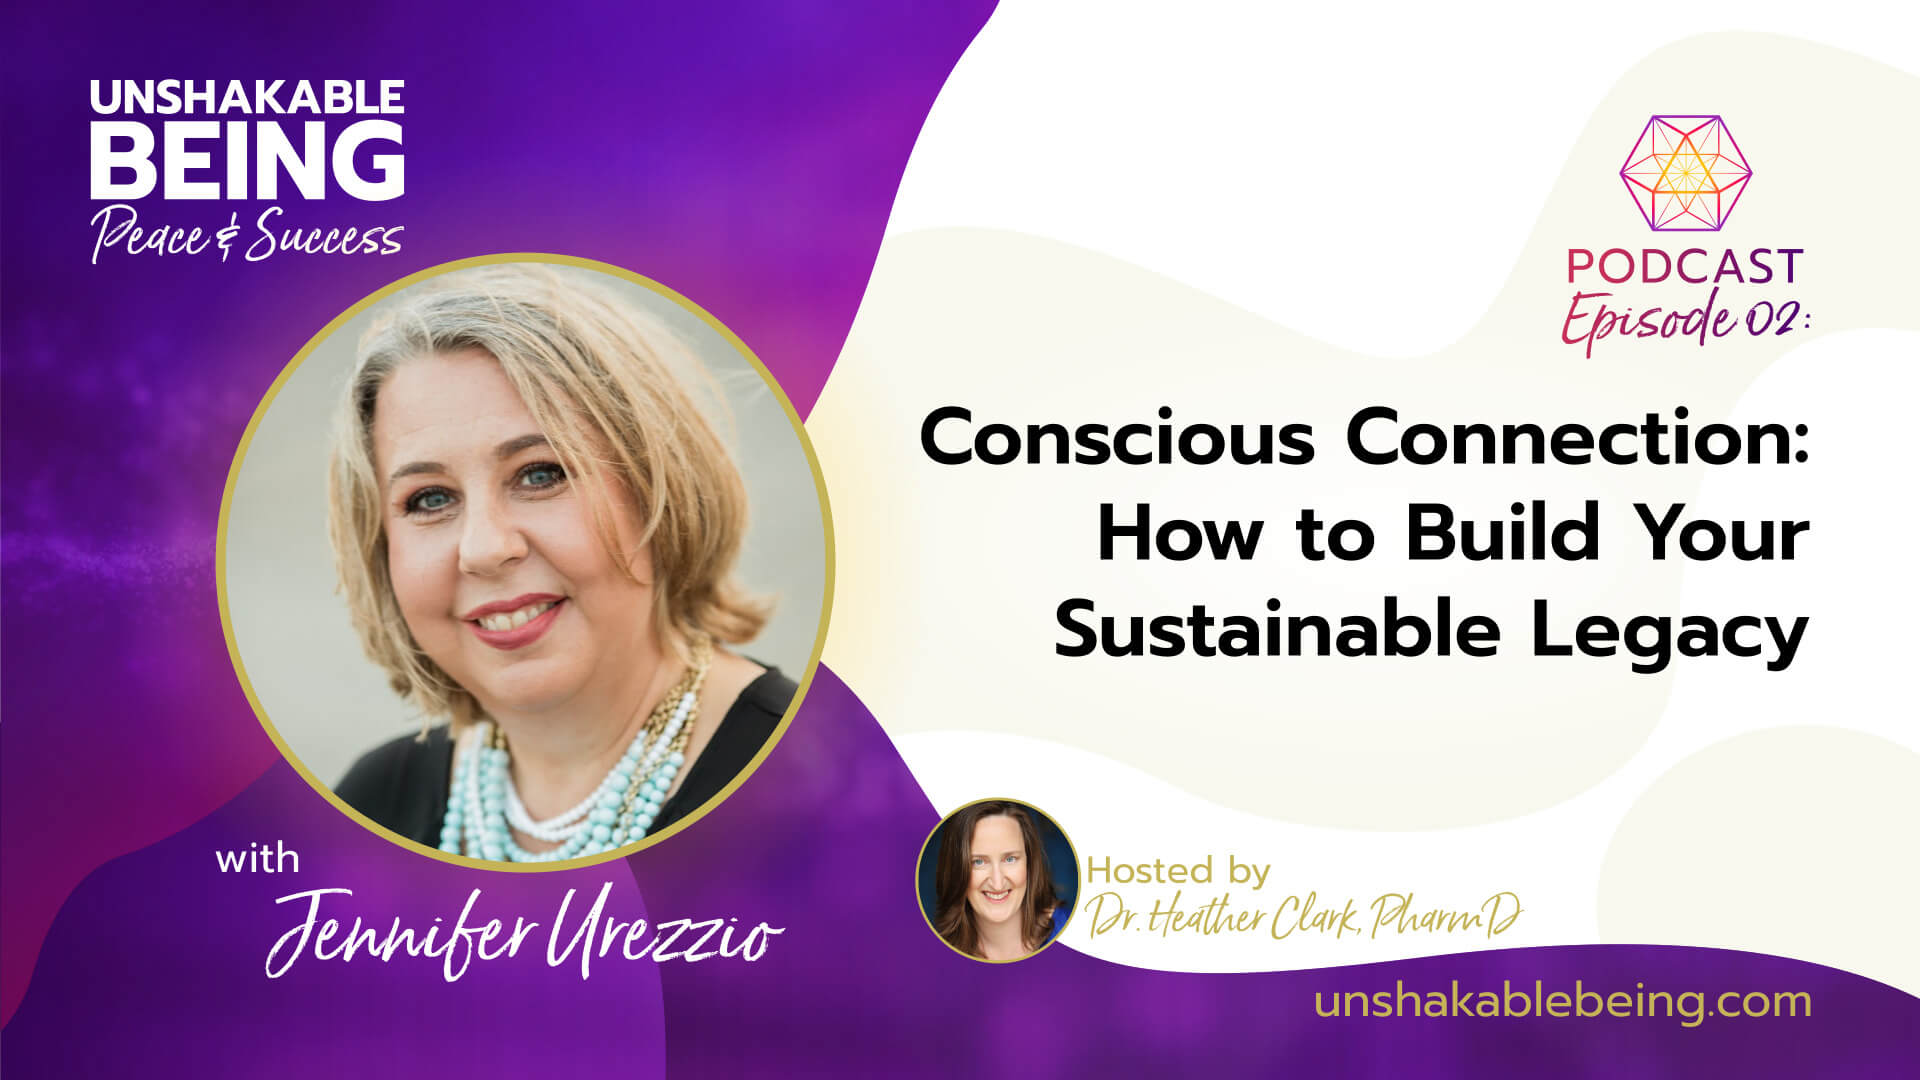 Conscious Connection: How to Build Your Sustainable Legacy with Jennifer Urezzio